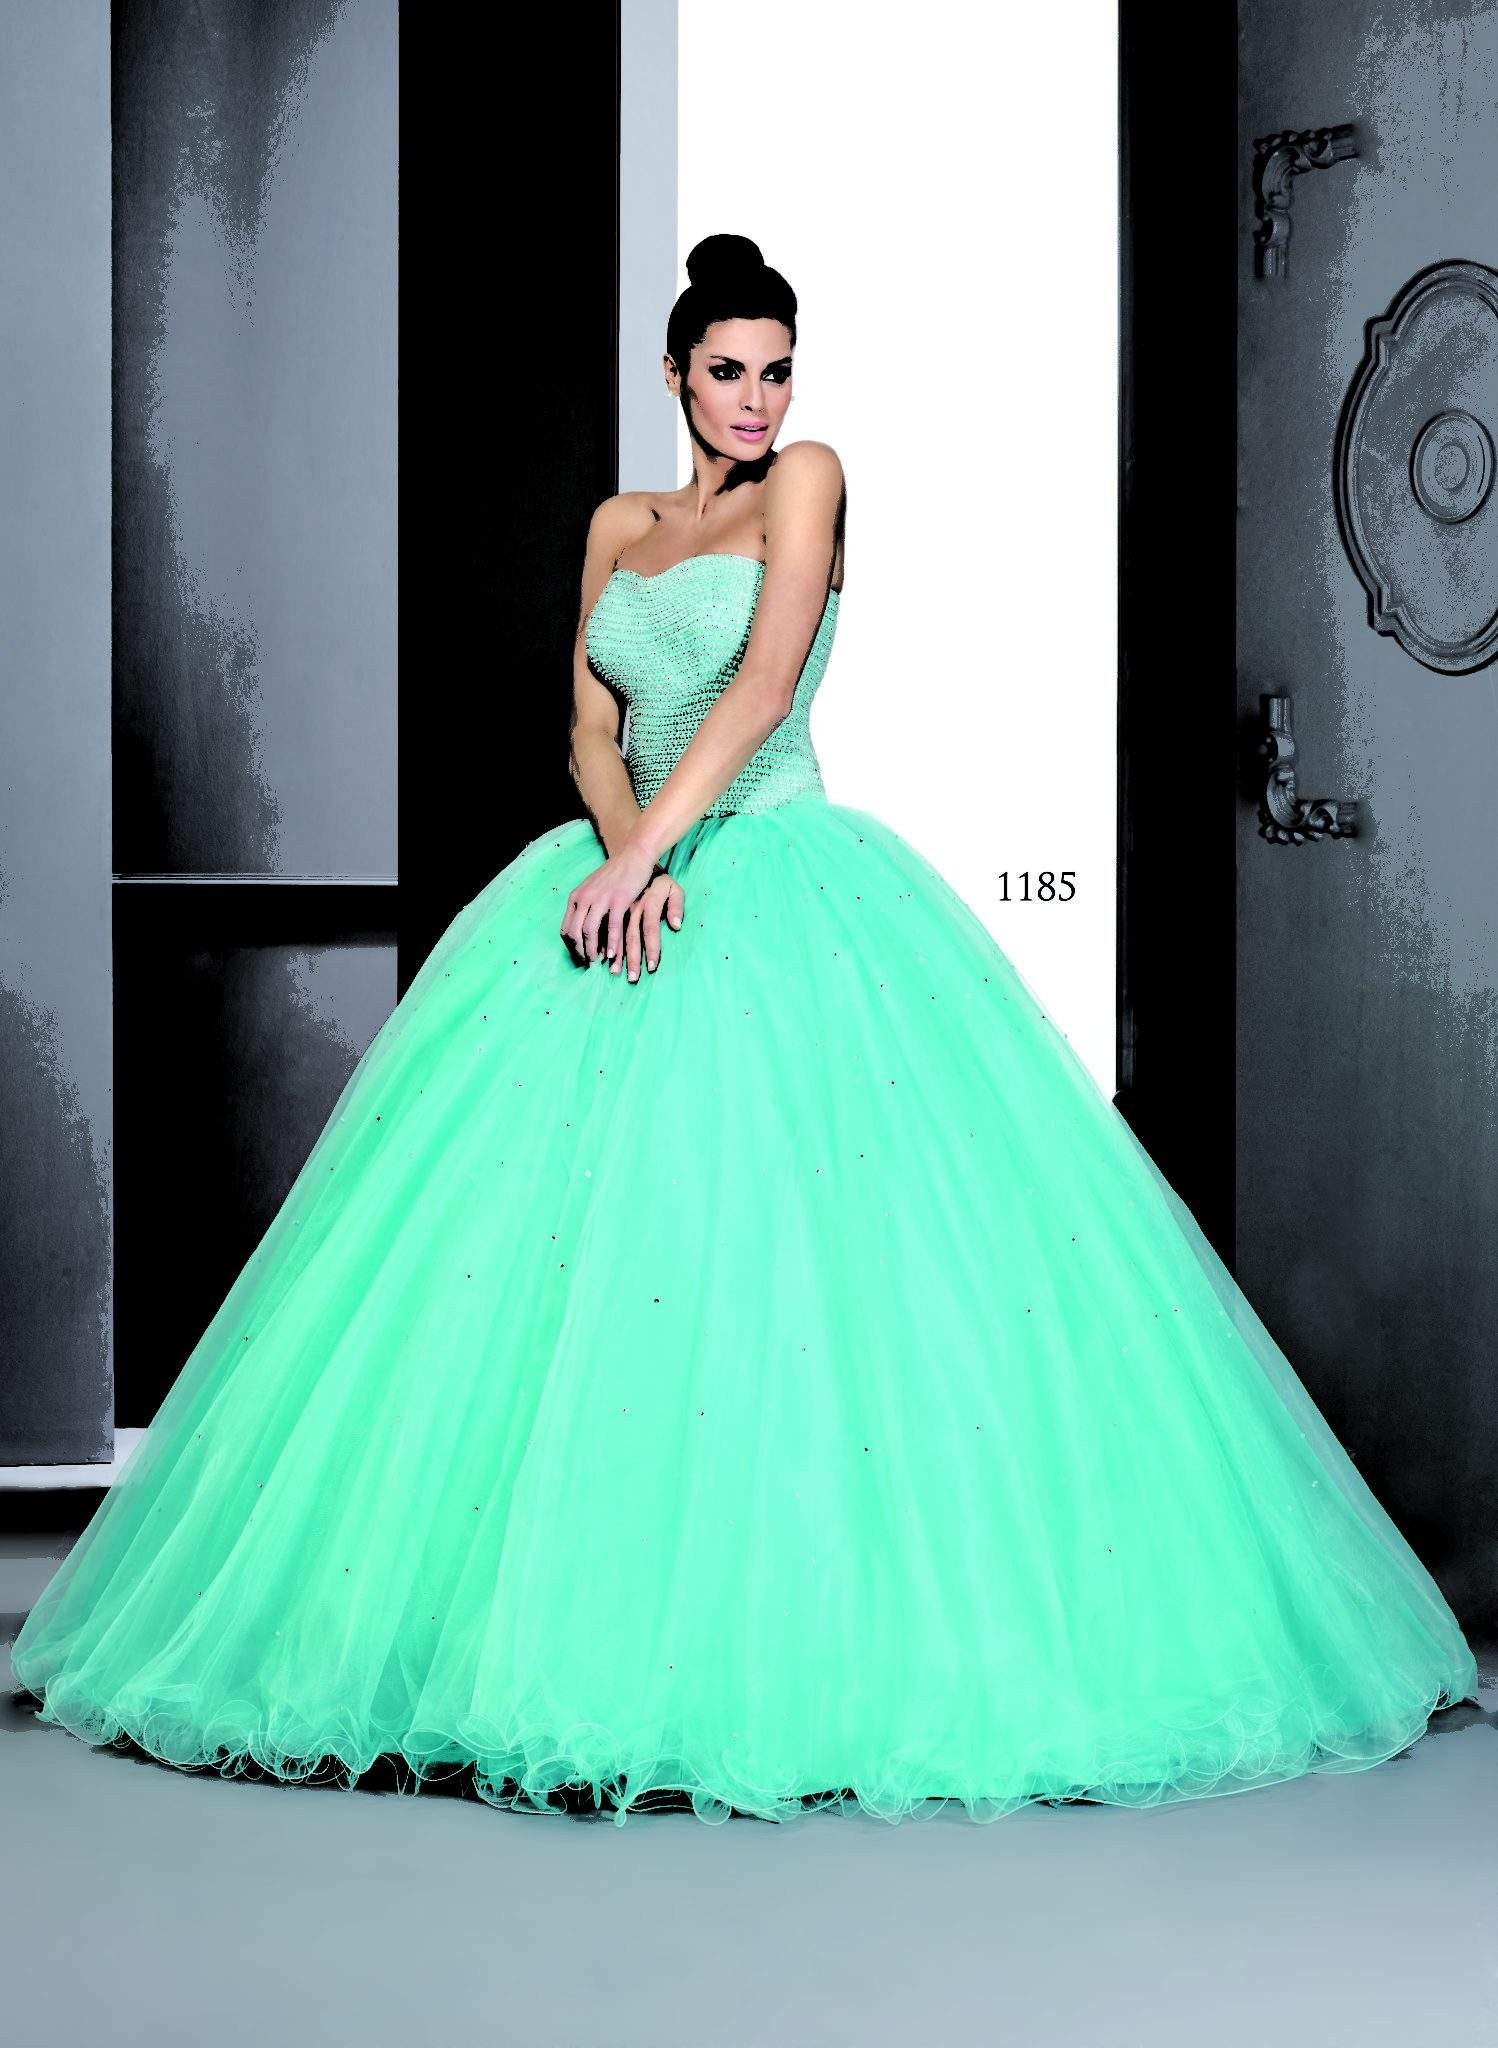 Pastel Colored Ball Gowns - Darius Cordell Fashion Ltd